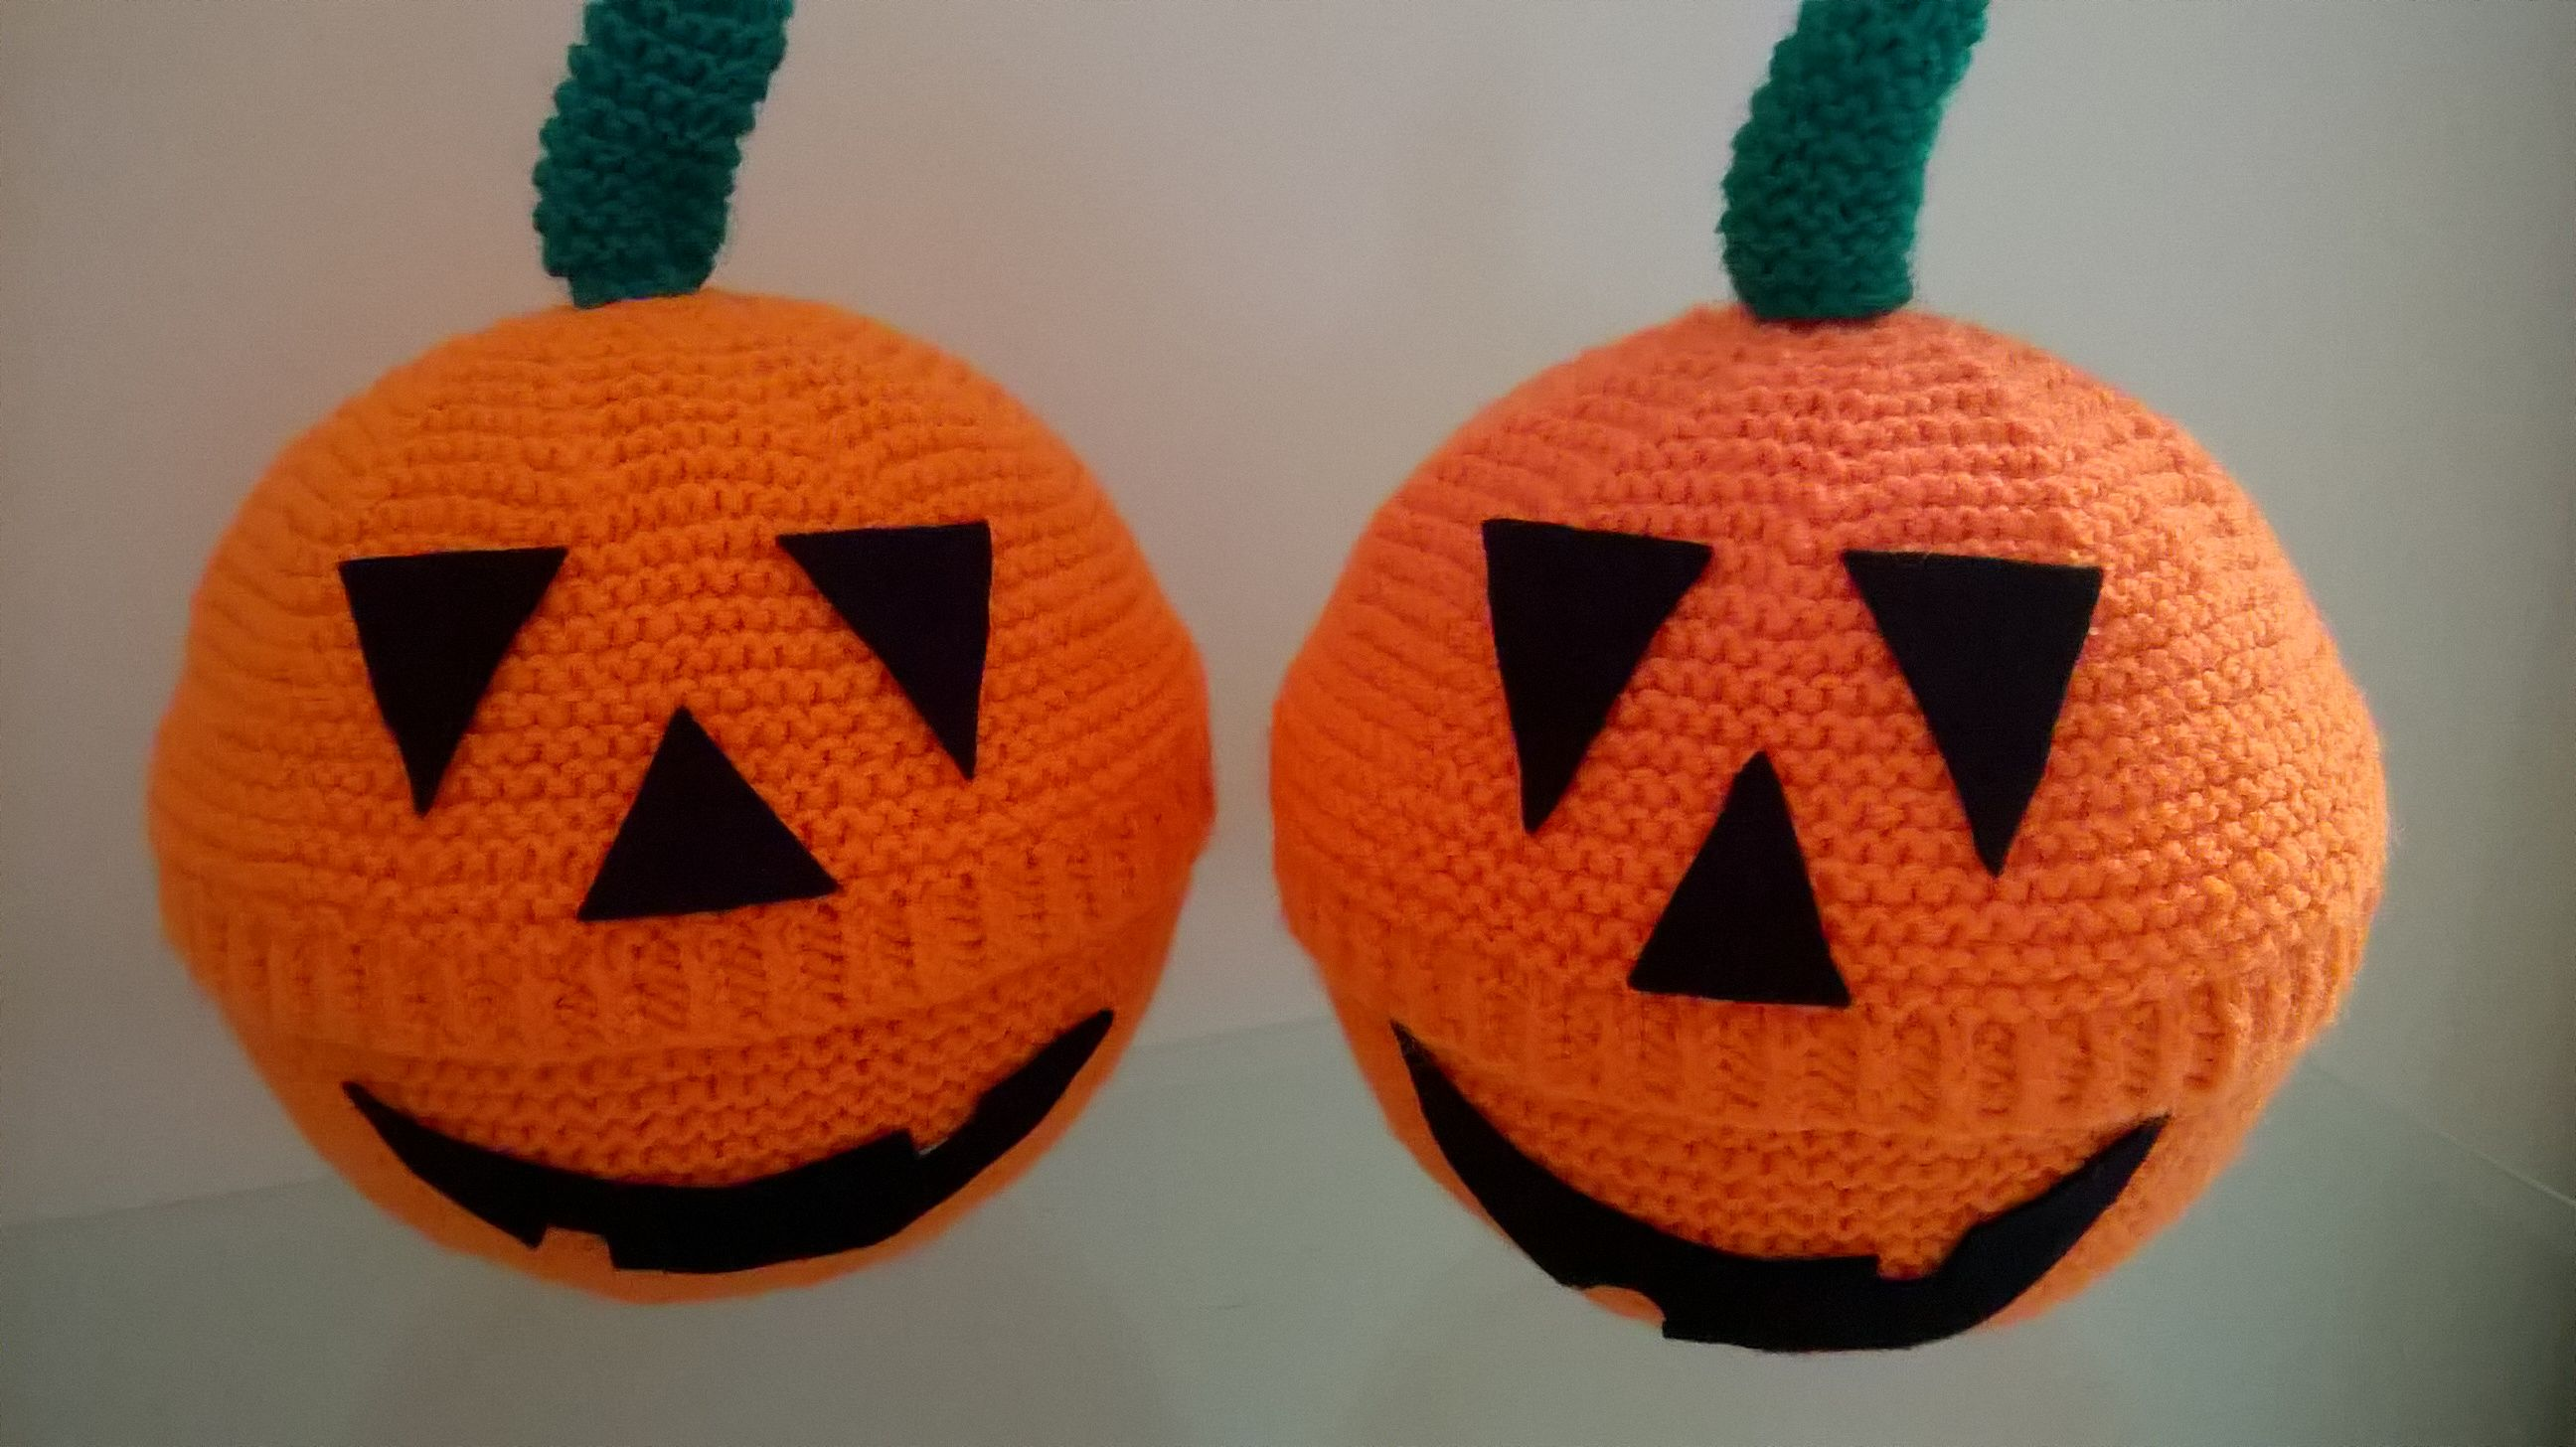 Hand Knitted Pumpkin Covers Over A Plastic Vessel Full Of